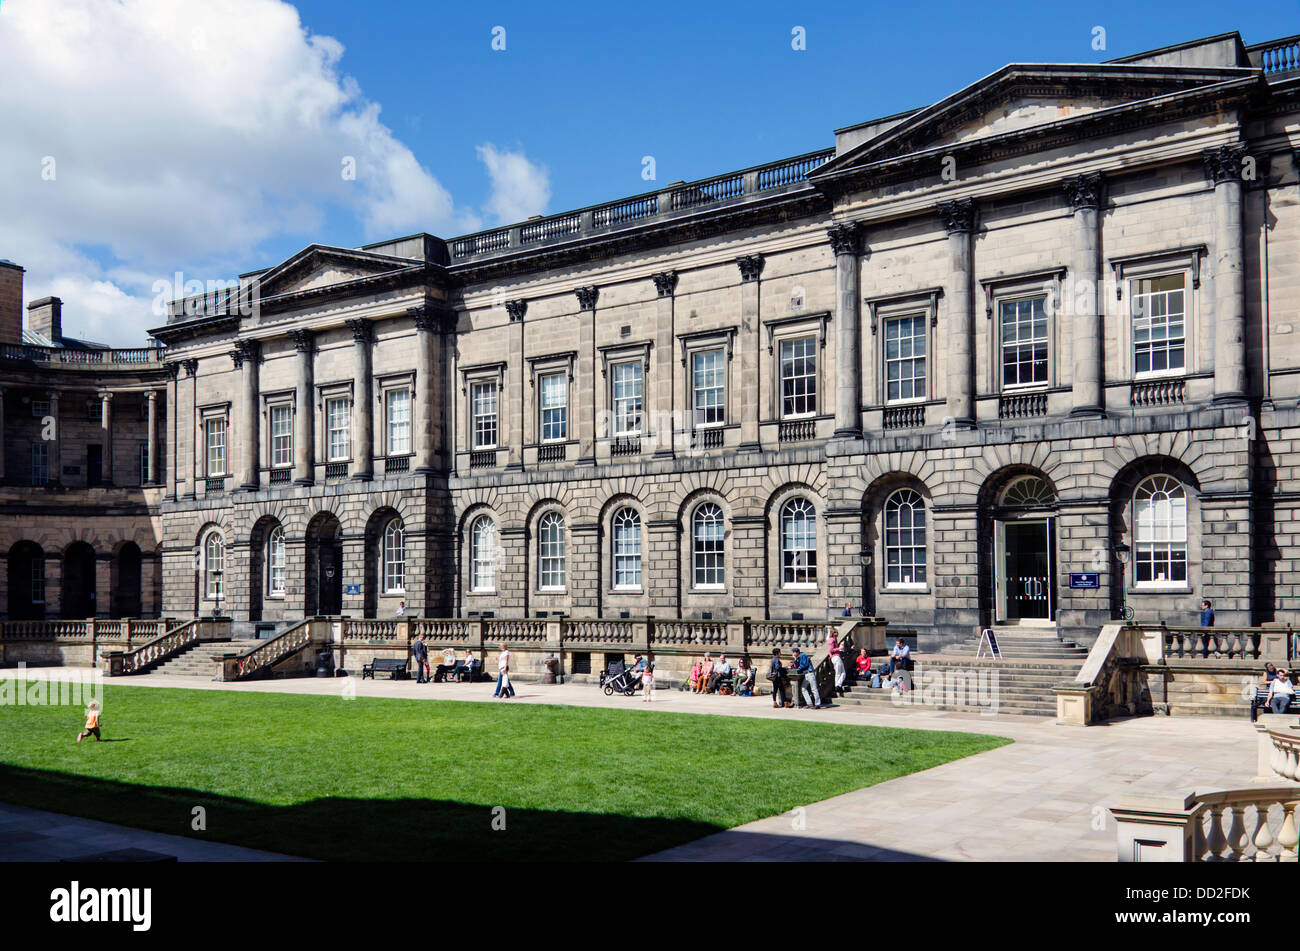 The Quad of Old College, part of the University of Edinburgh. Designed by Robert Adam and begun in 1789 - Stock Image